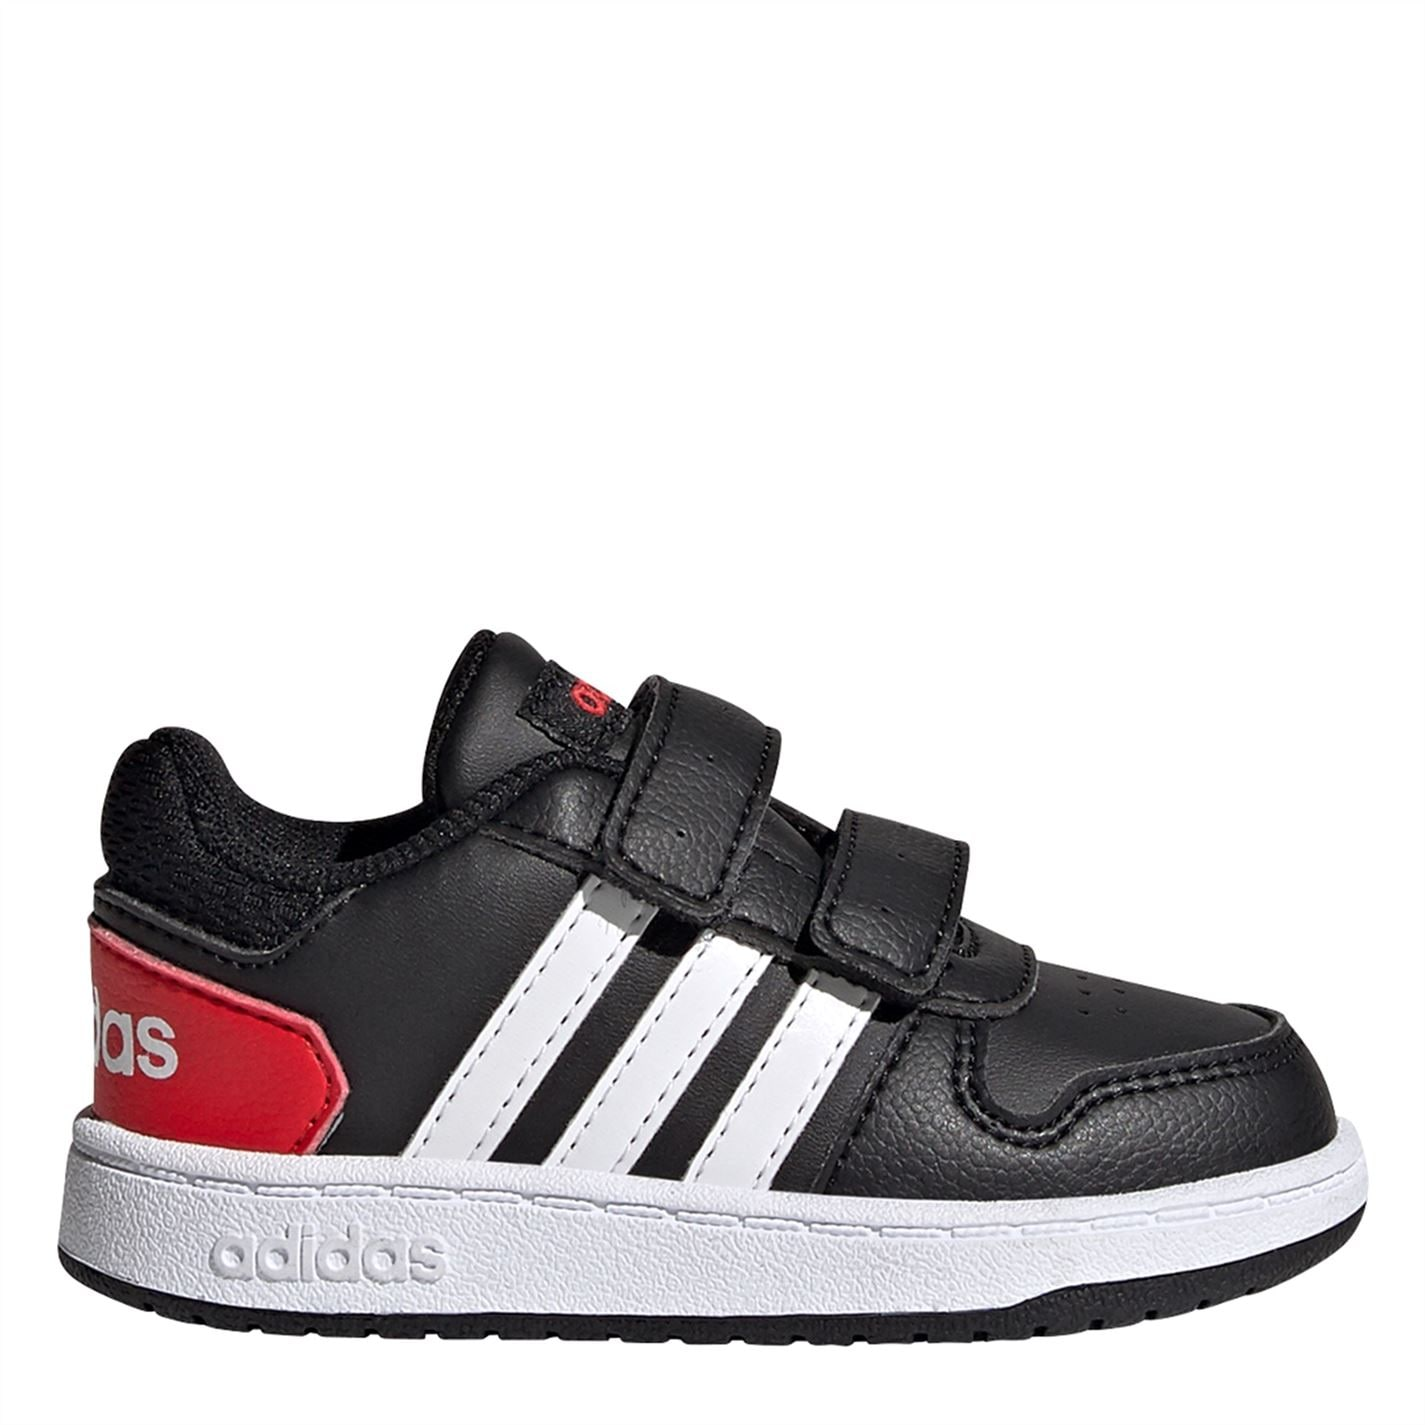 adidas Hoops Court Infant Boys Trainers Black/White/Red